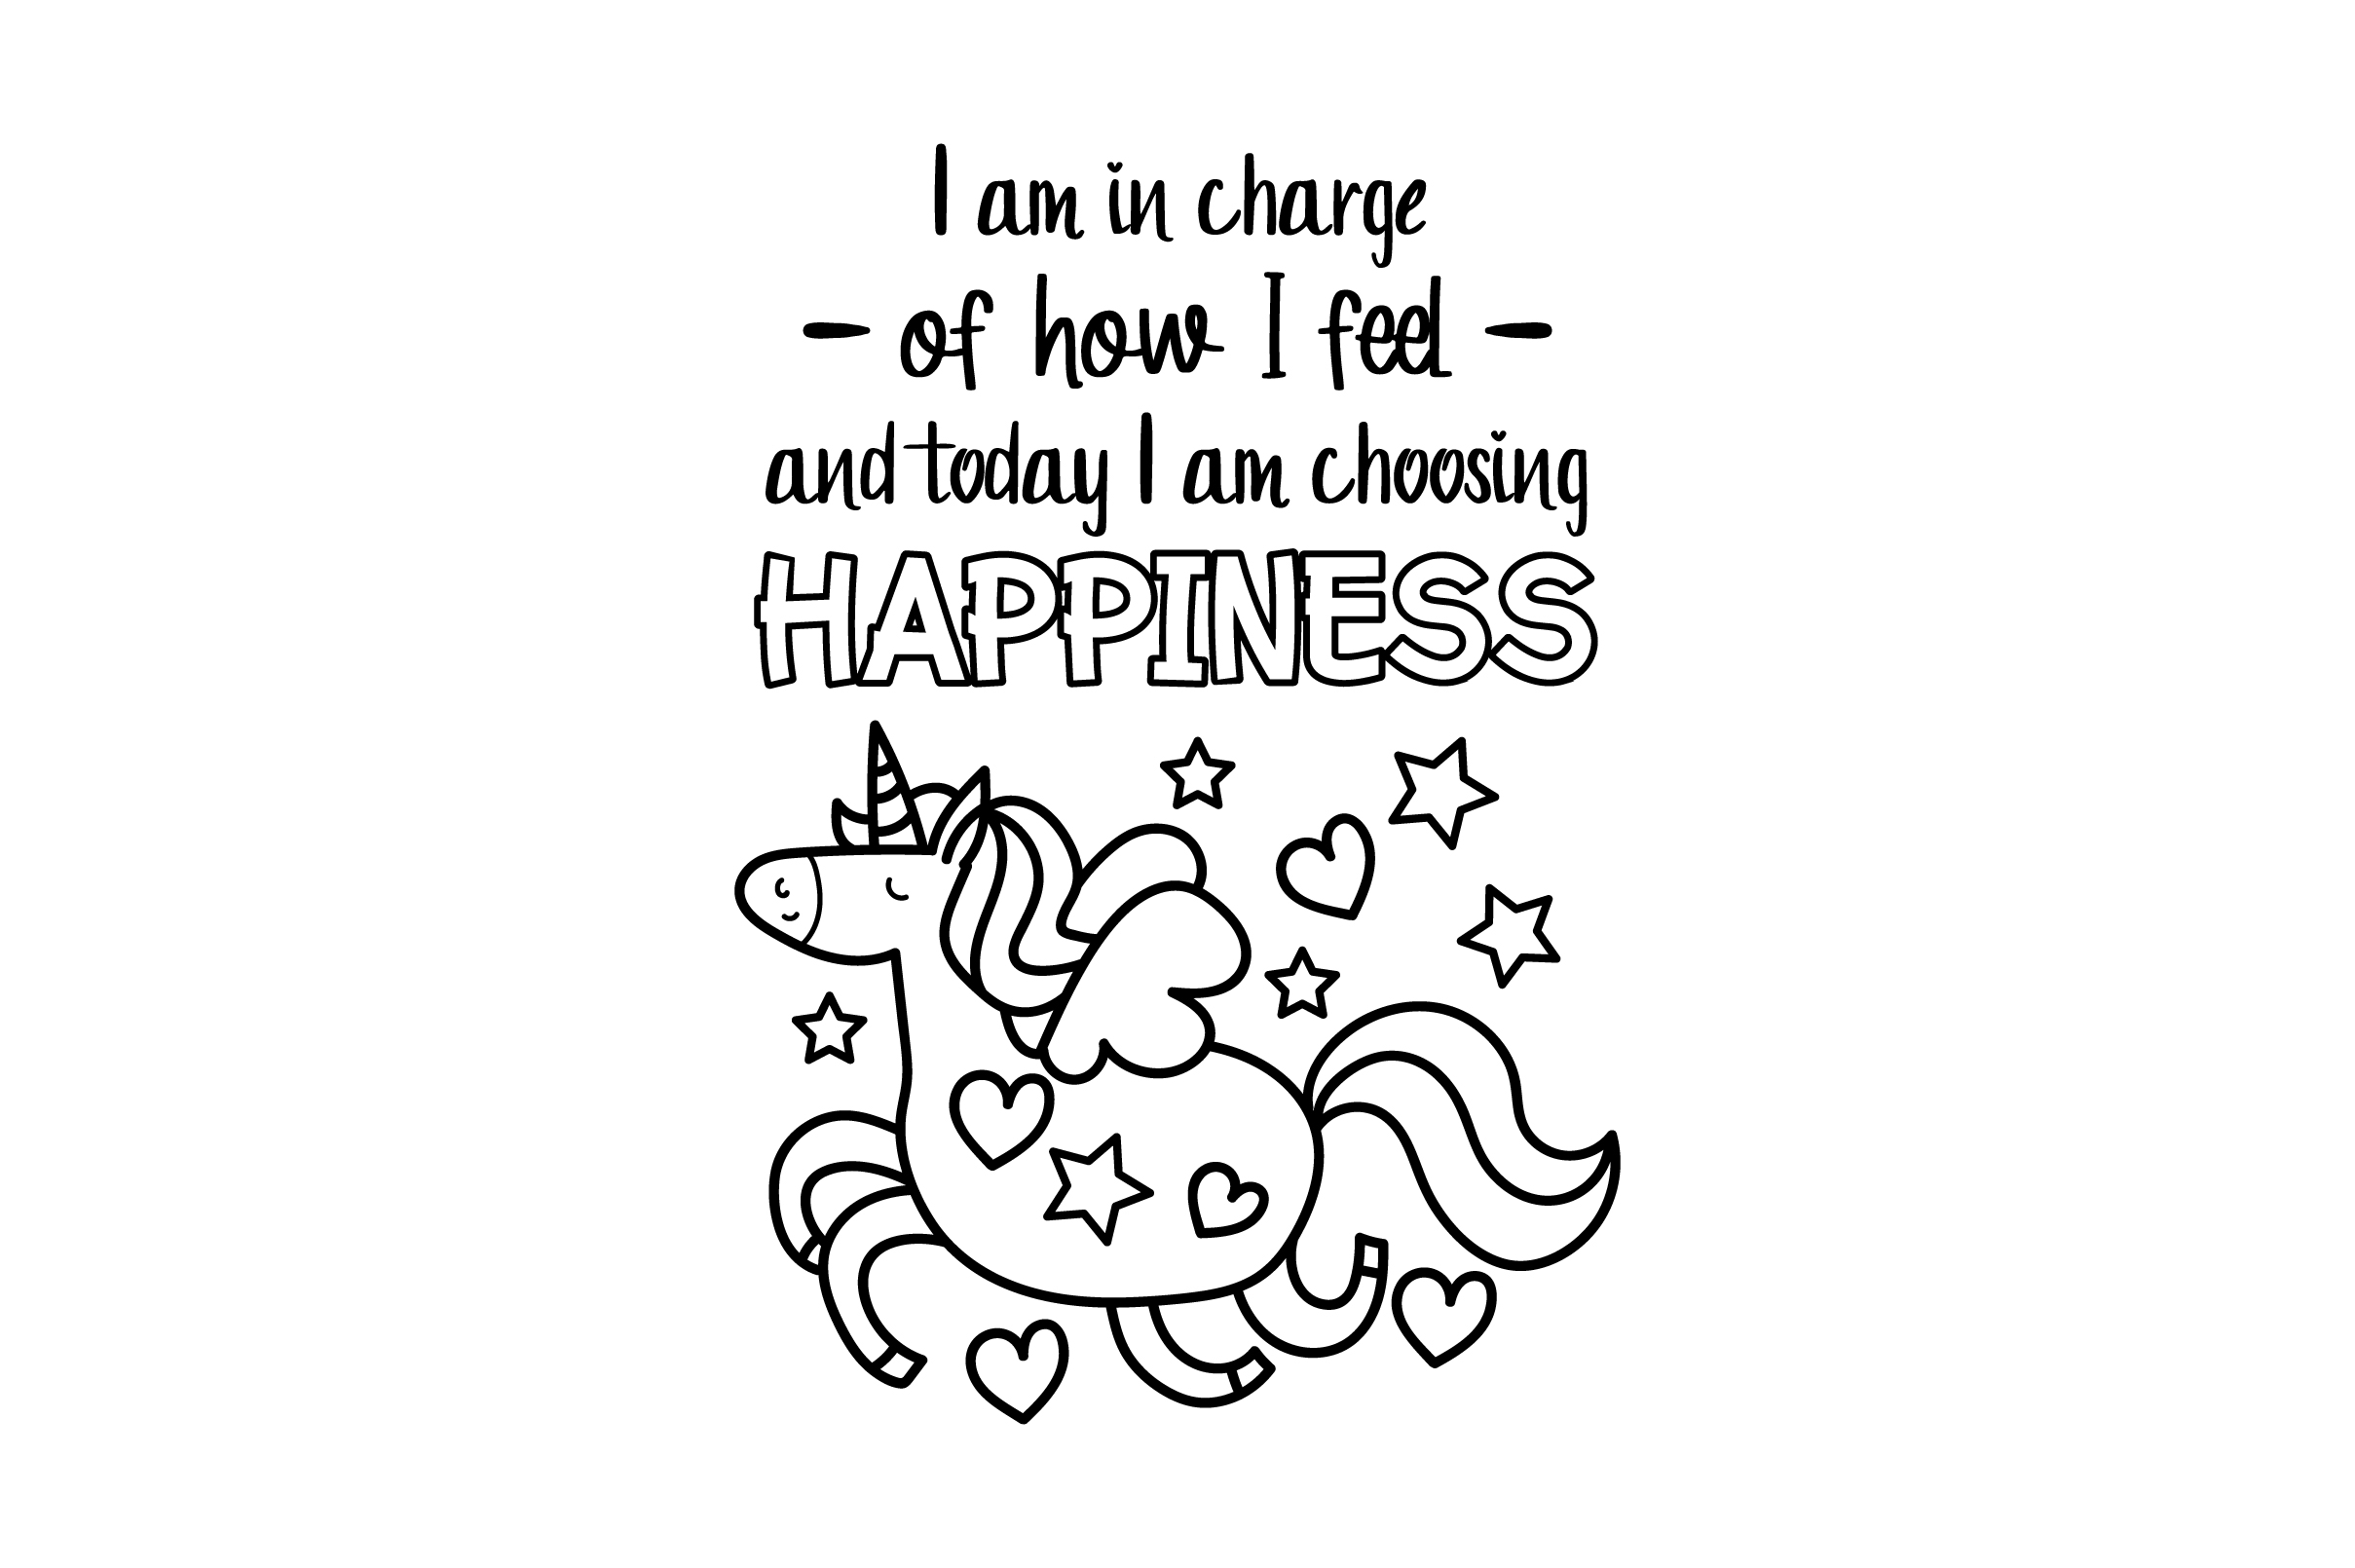 Download Free I Am In Charge Of How I Feel And Today I Am Choosing Happiness for Cricut Explore, Silhouette and other cutting machines.